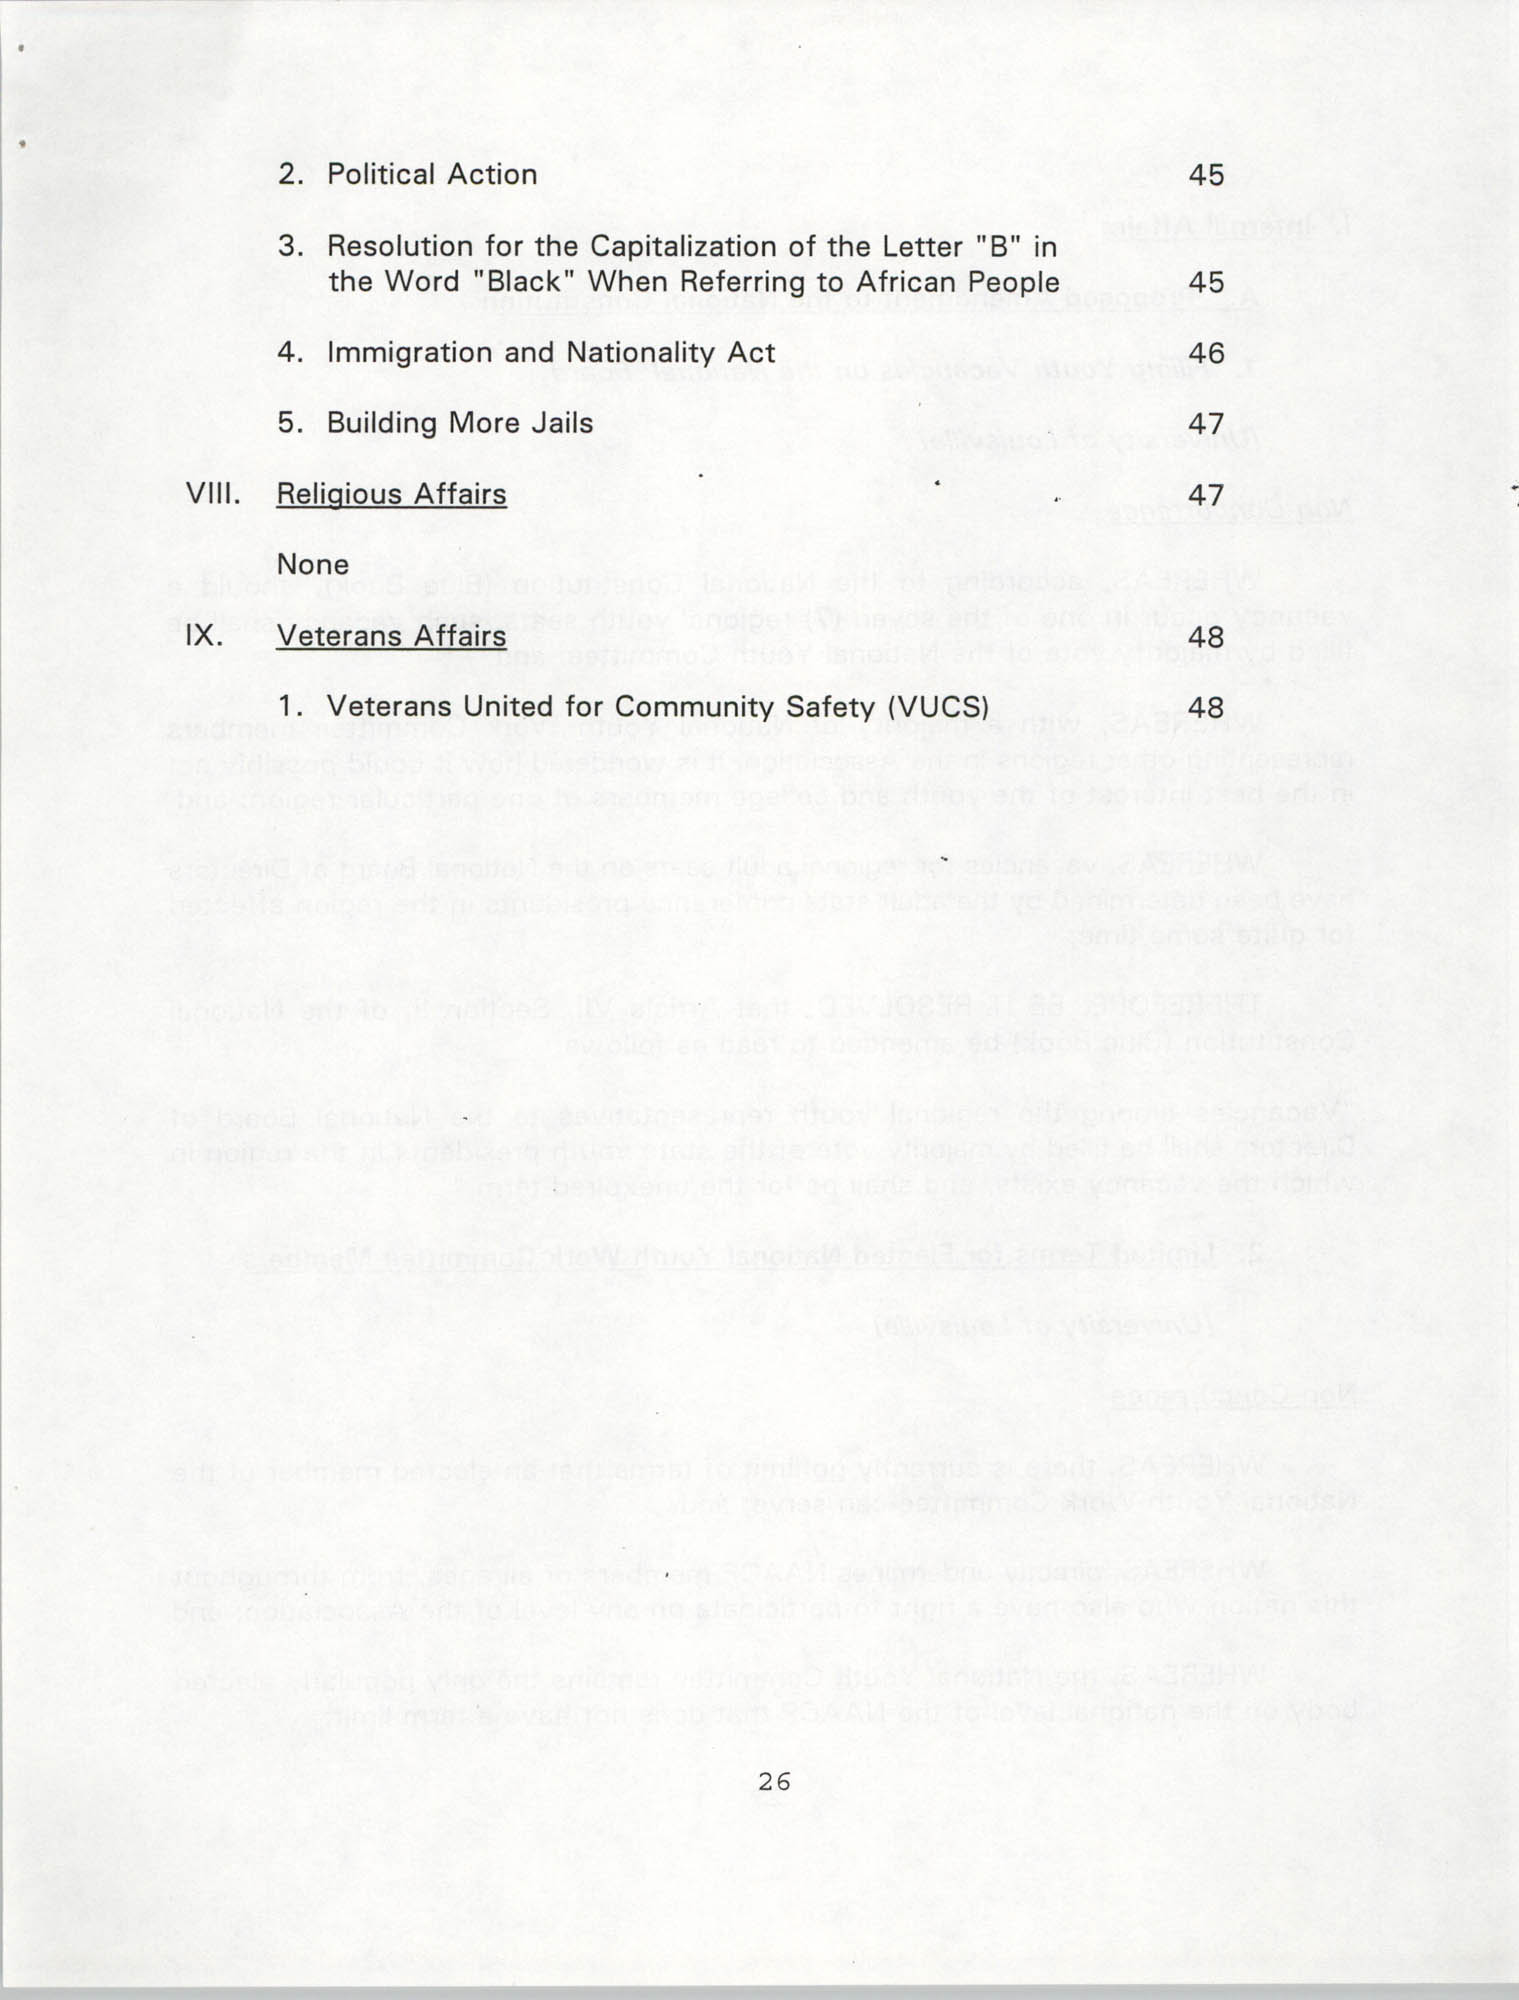 Resolutions Submitted Under Article X, Section 2 of the Constitution of the NAACP, 1994, Page 26